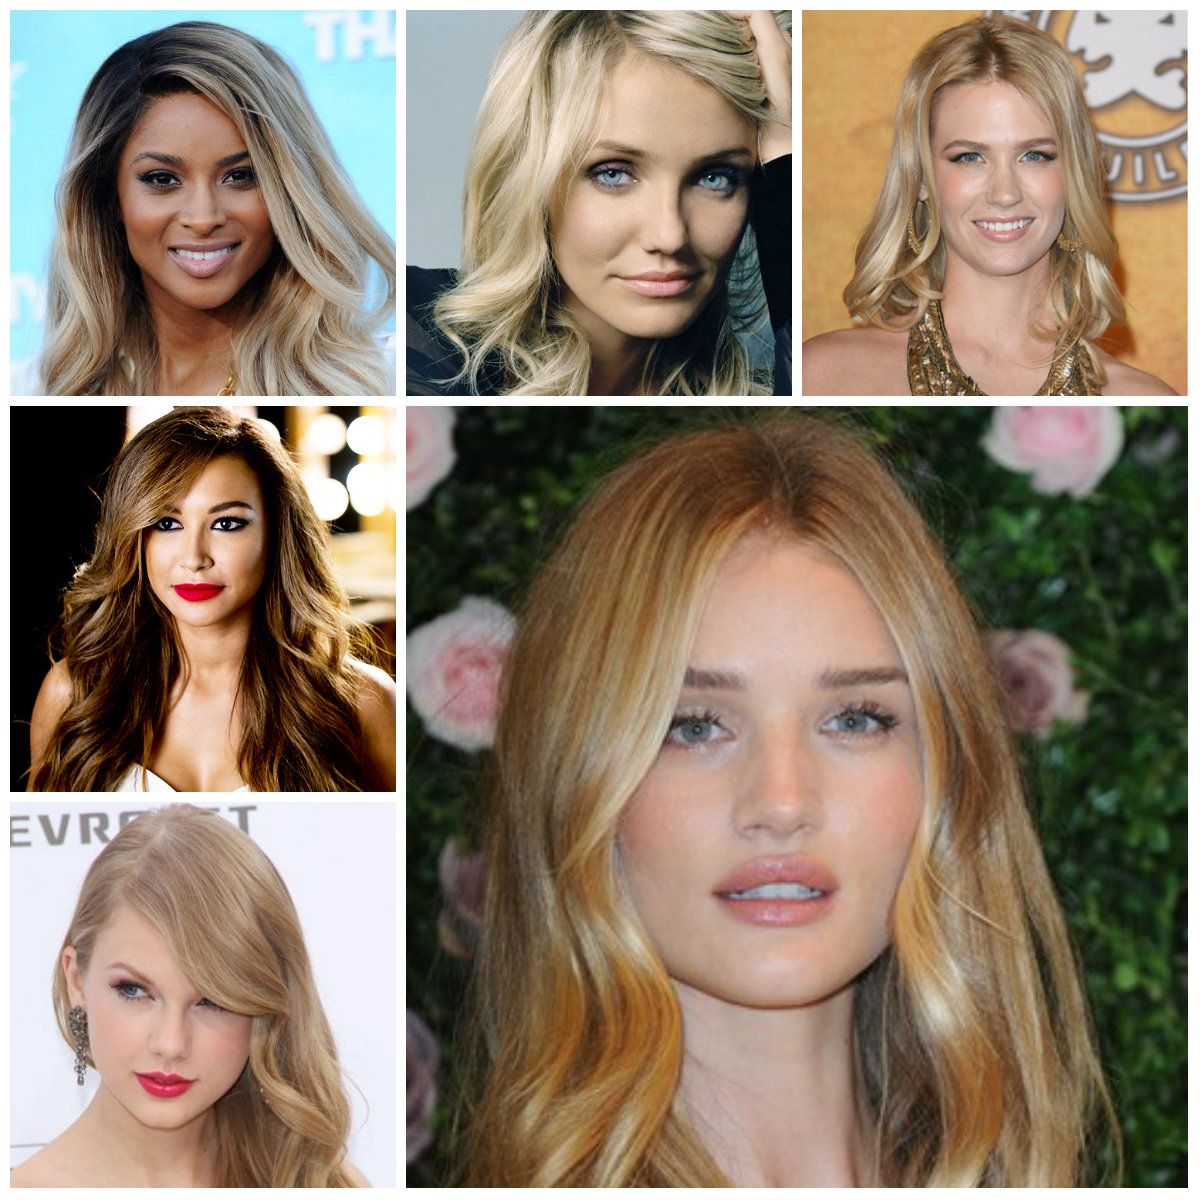 Latest Hair Color Ideas 2016 | Trendy Hairstyles 2015 / 2016 for ...